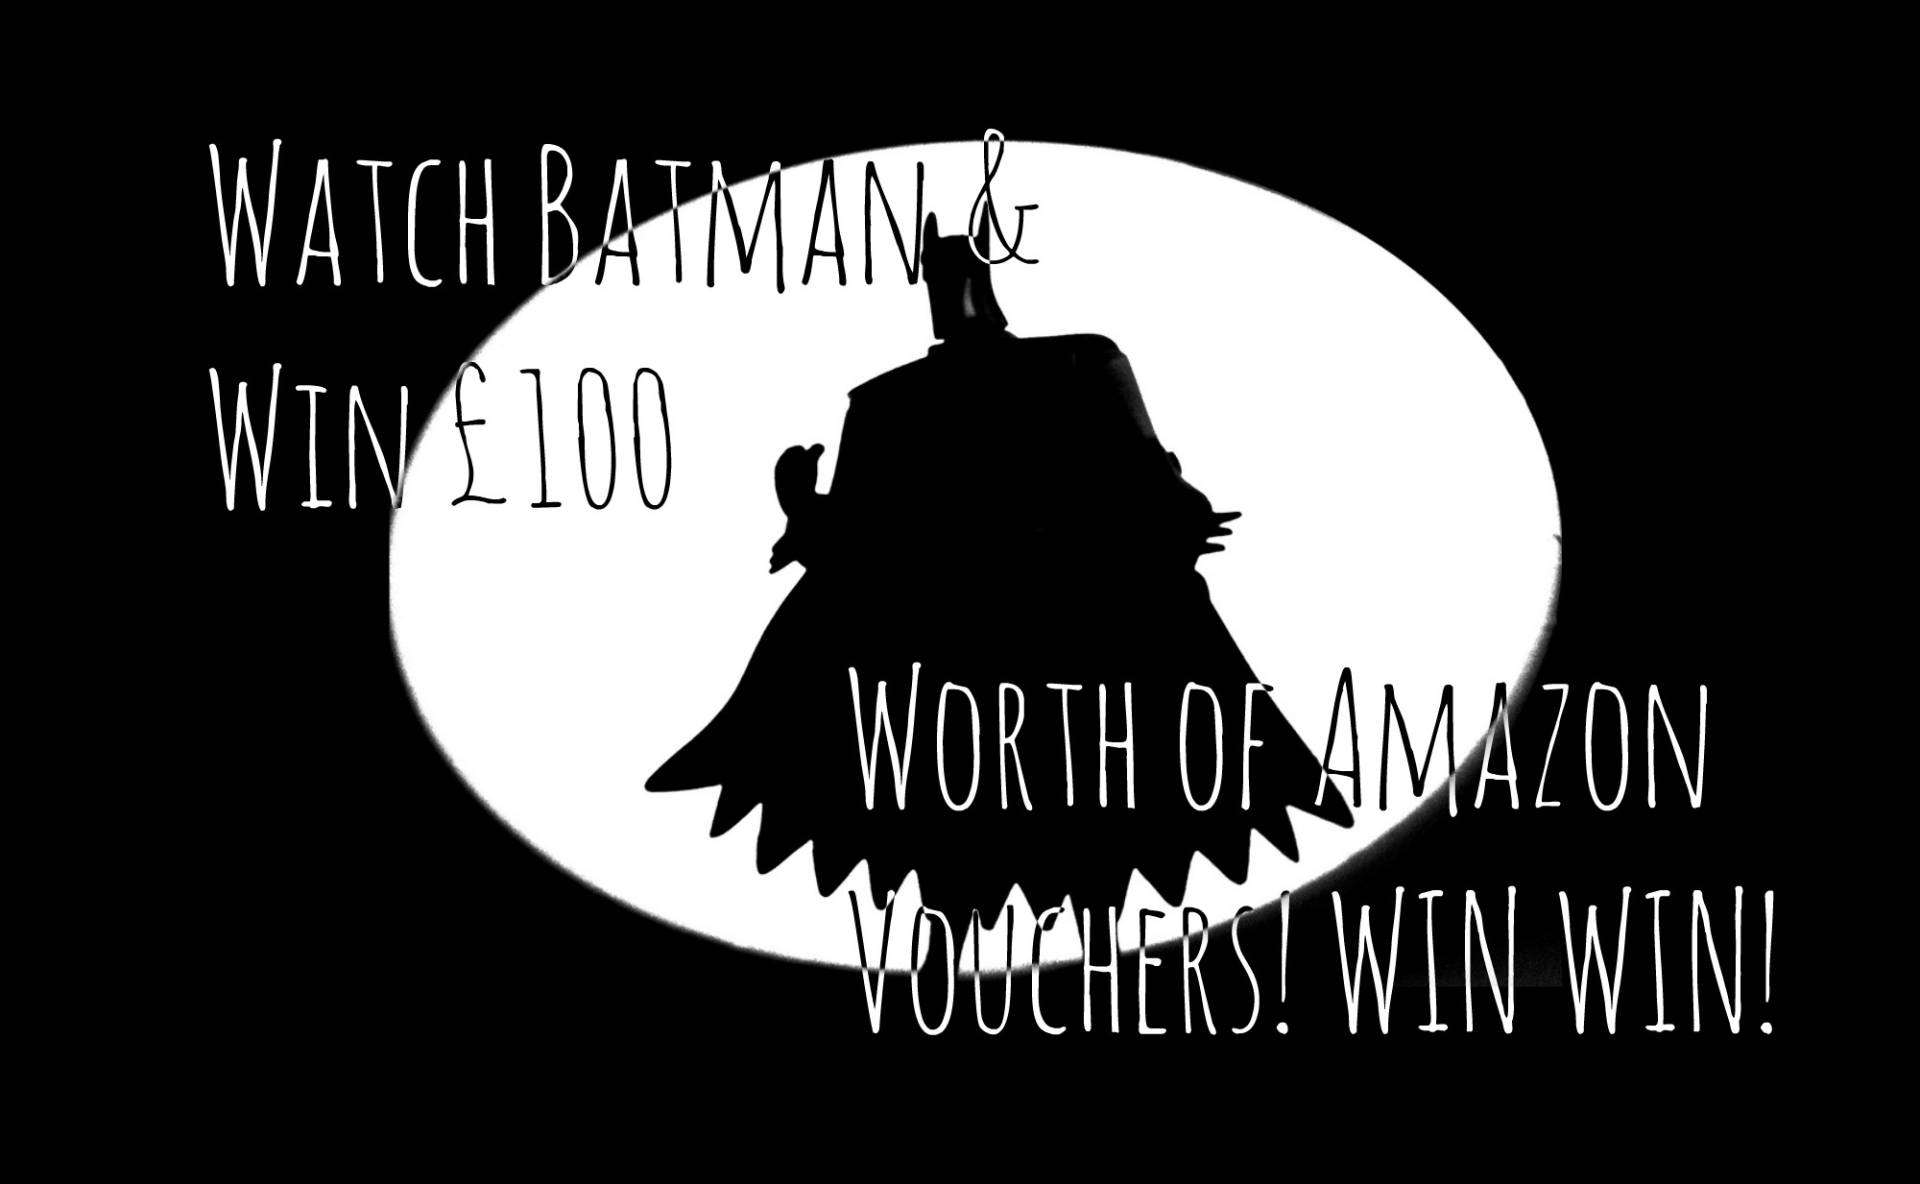 Watch Batman & WIN a £100 Amazon Voucher! WIN WIN!, Batman Featured%, uncategorised%